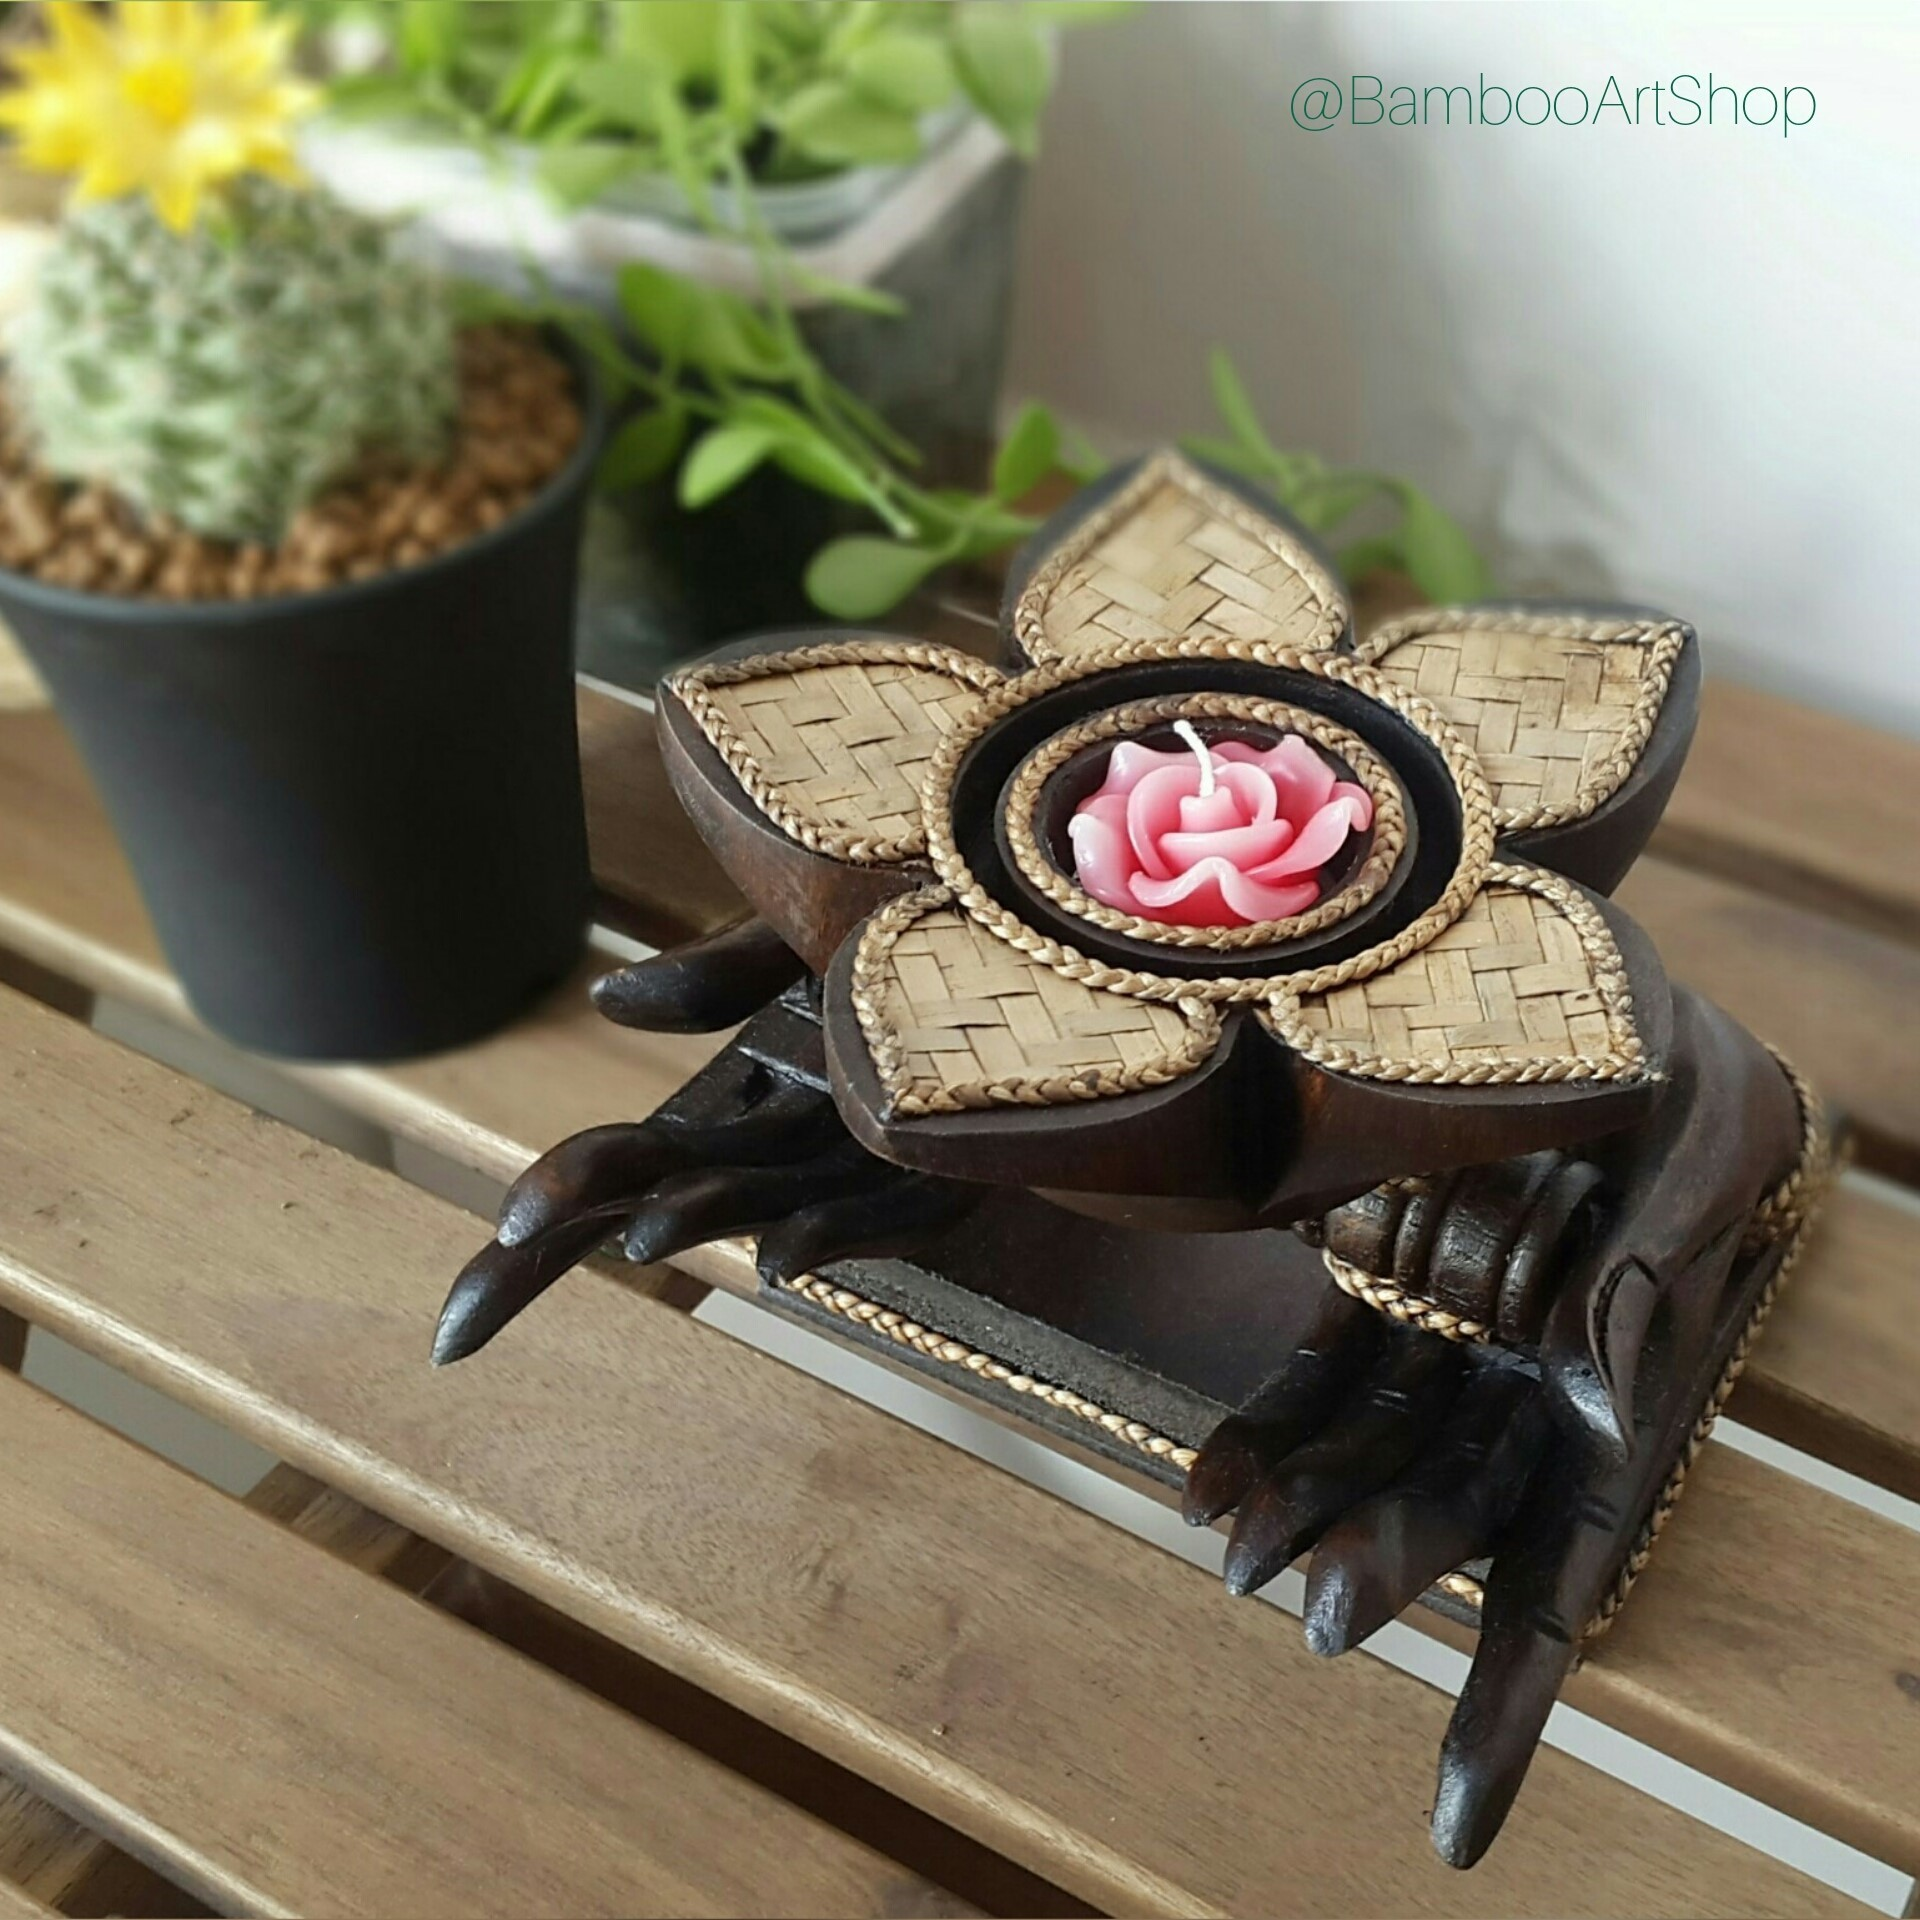 Picture of Tealight Candle Holder of Buddha Hands Holding a Lotus Flower, Natural Hand Crafted Thai Wood Carving, Free Flower Tealight Candle Included